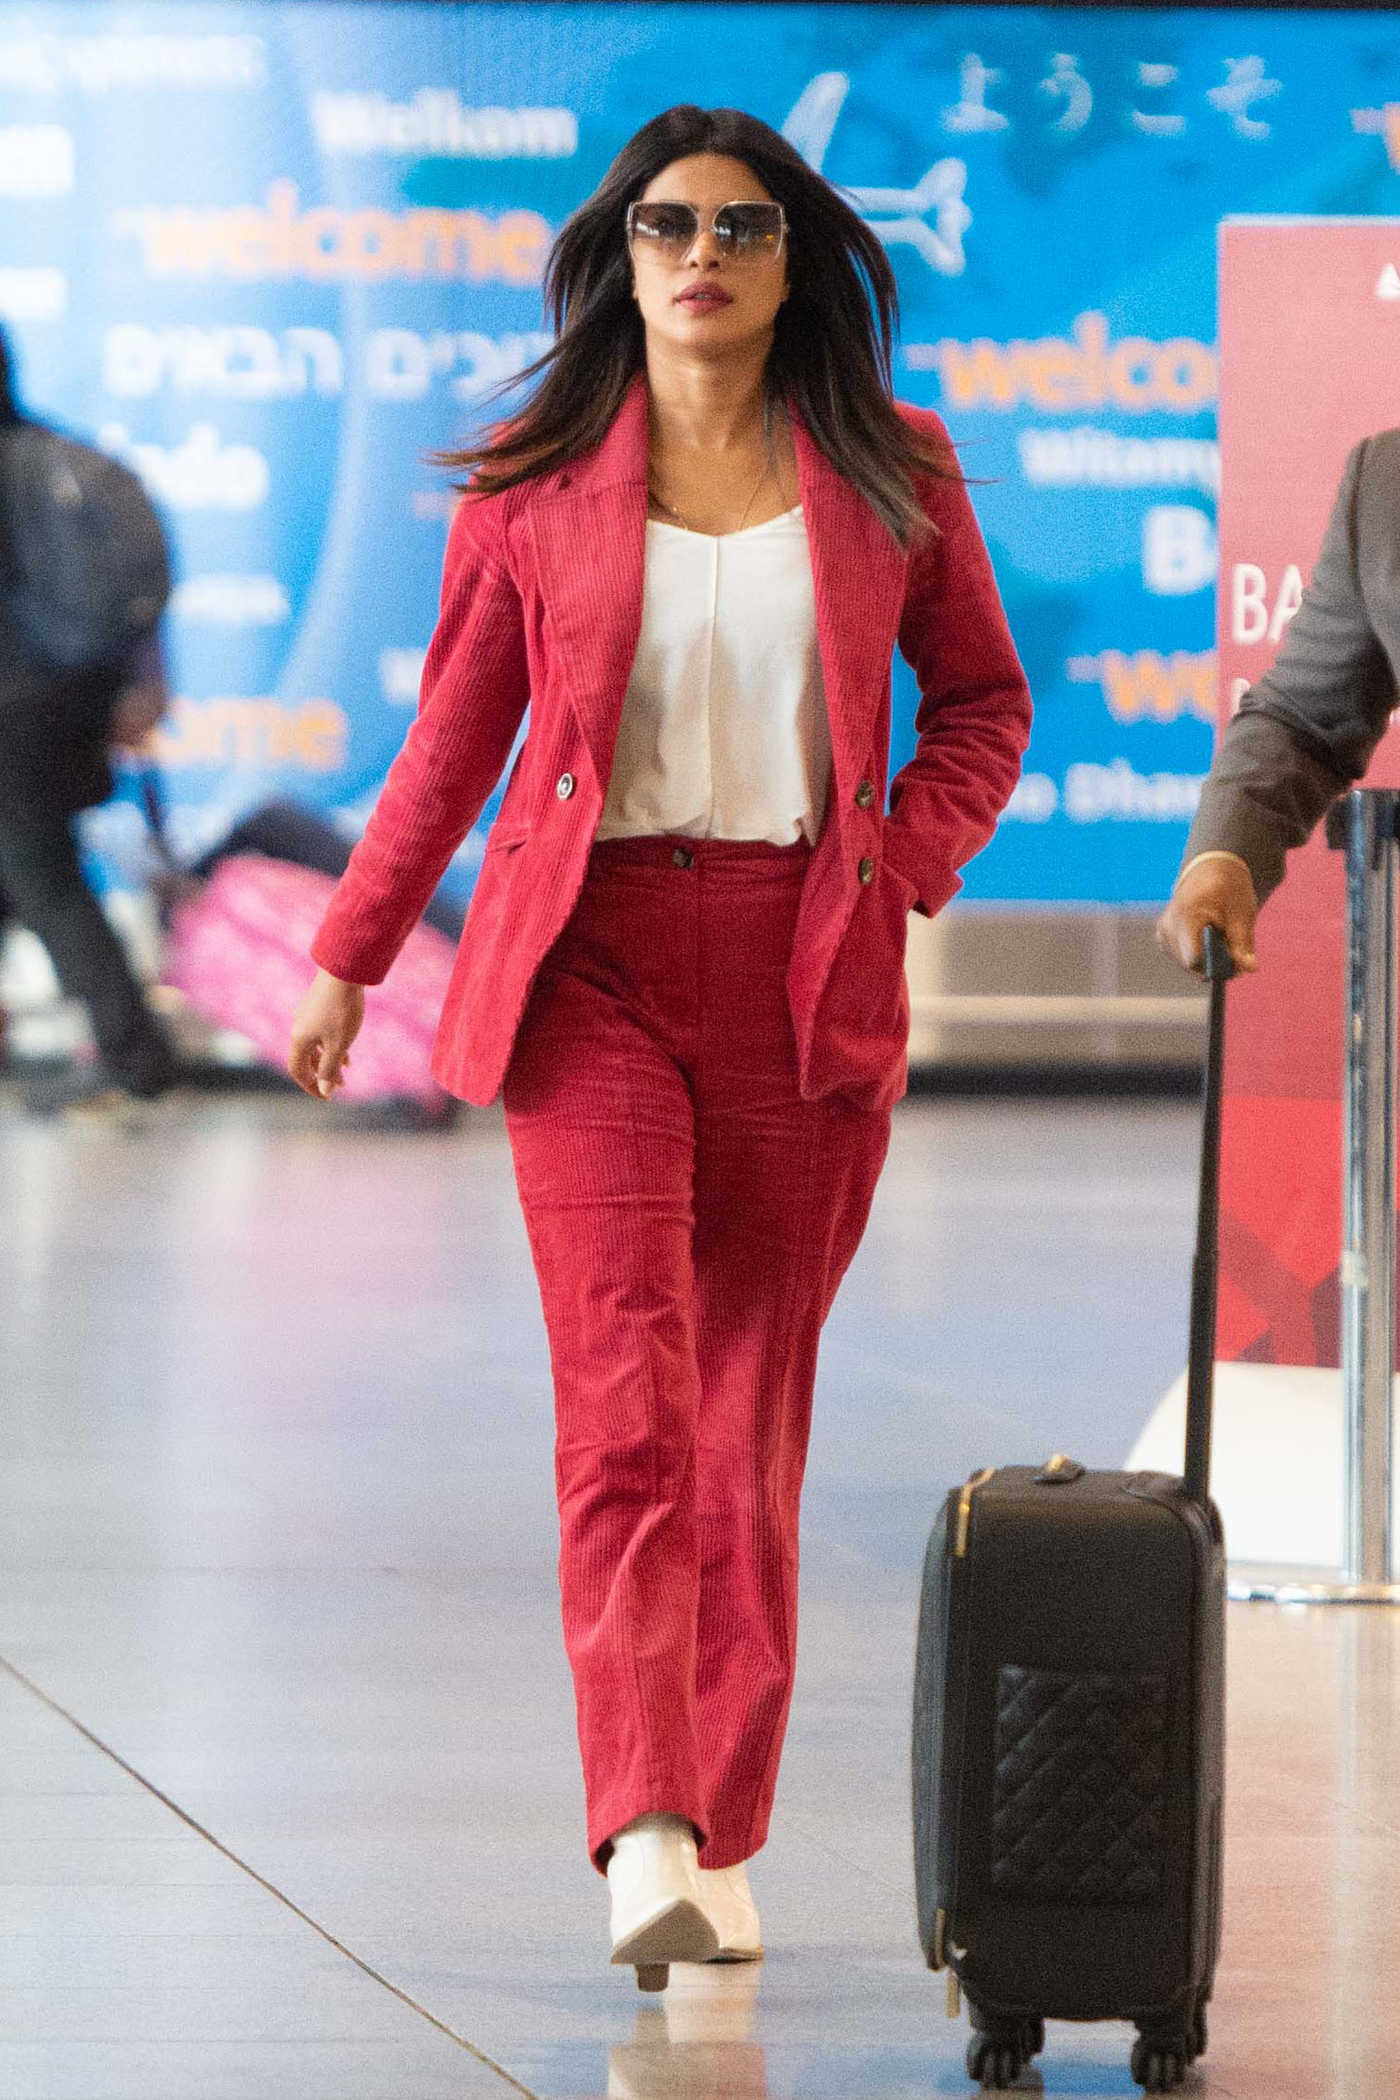 Priyanka Chopra in a Red Suit Arrives at JFK Airport in New York 12/15/2018